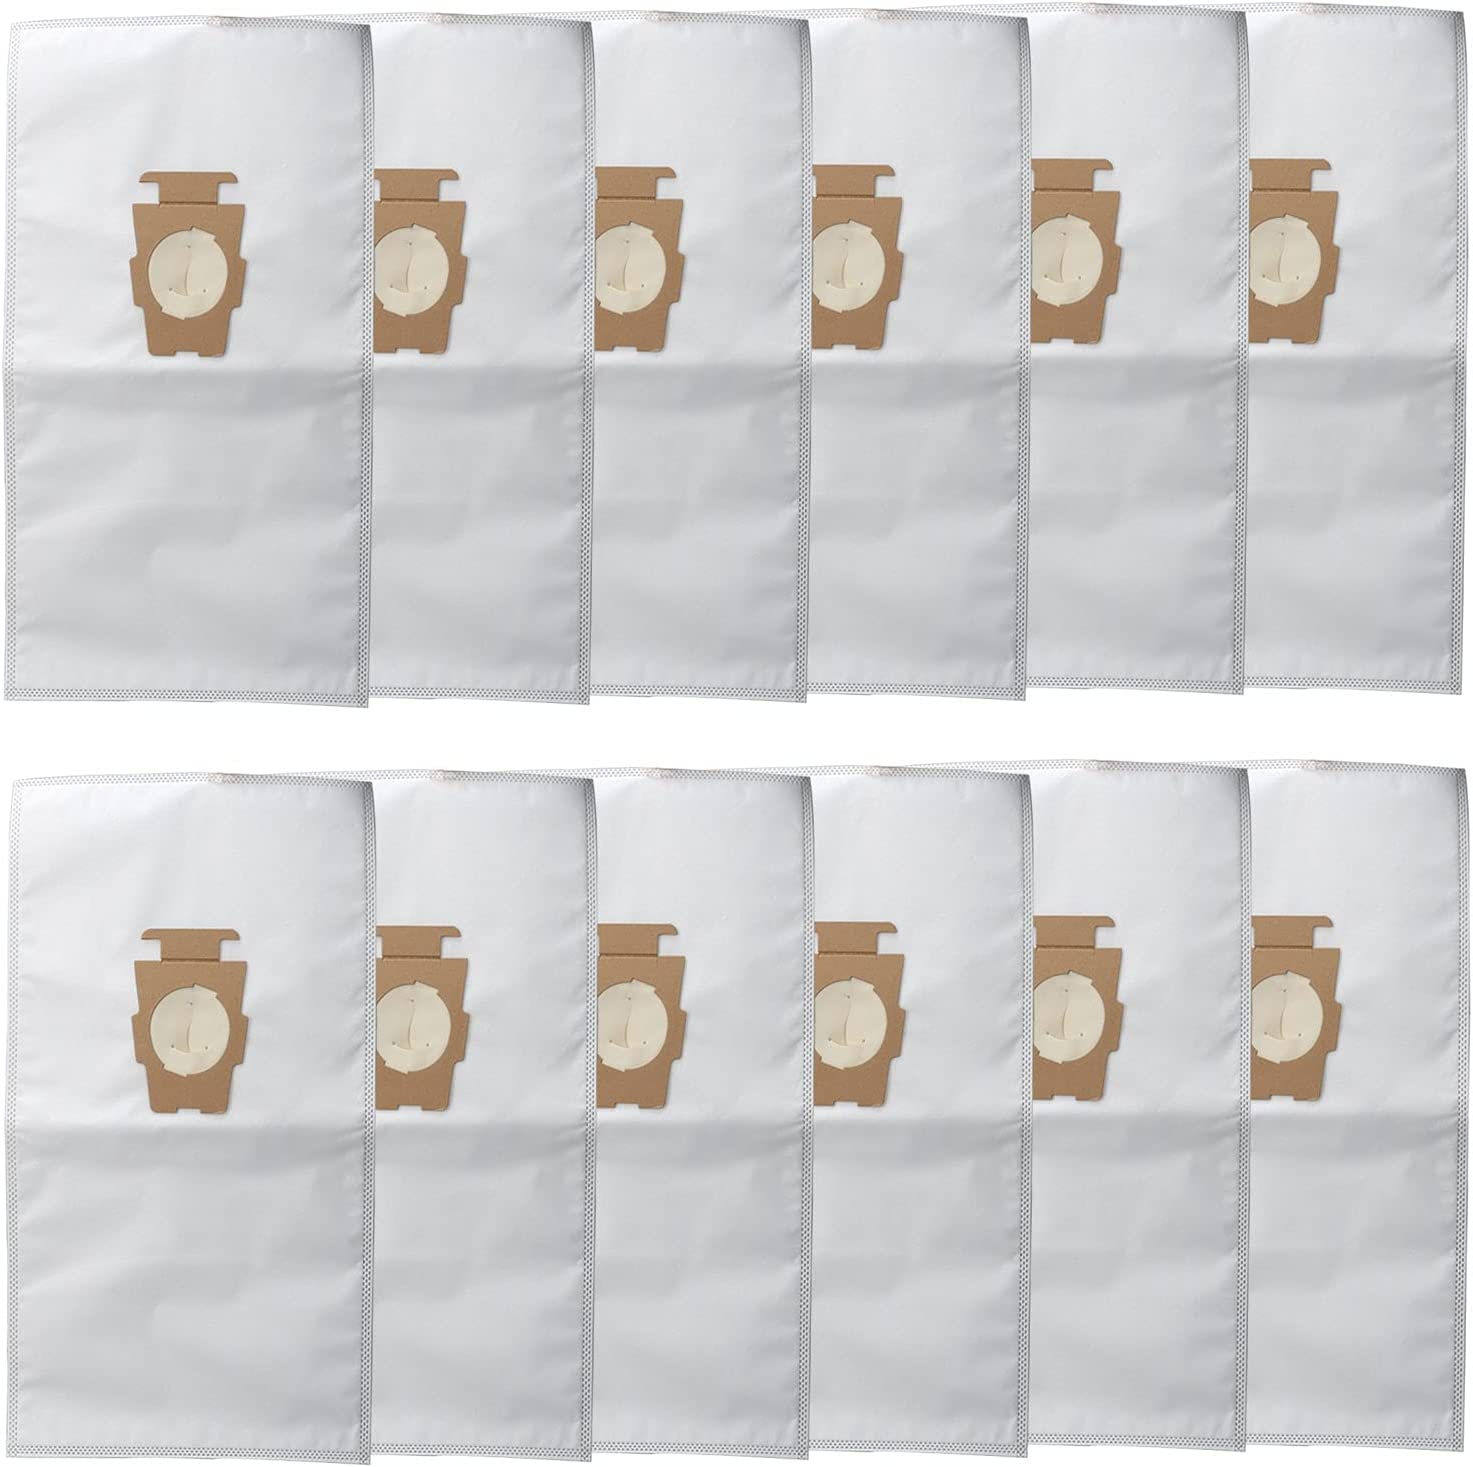 204811 Vacuum Bags 12 Pack 204 with Kirby Chicago Mall 2021 new 204814 Compatible